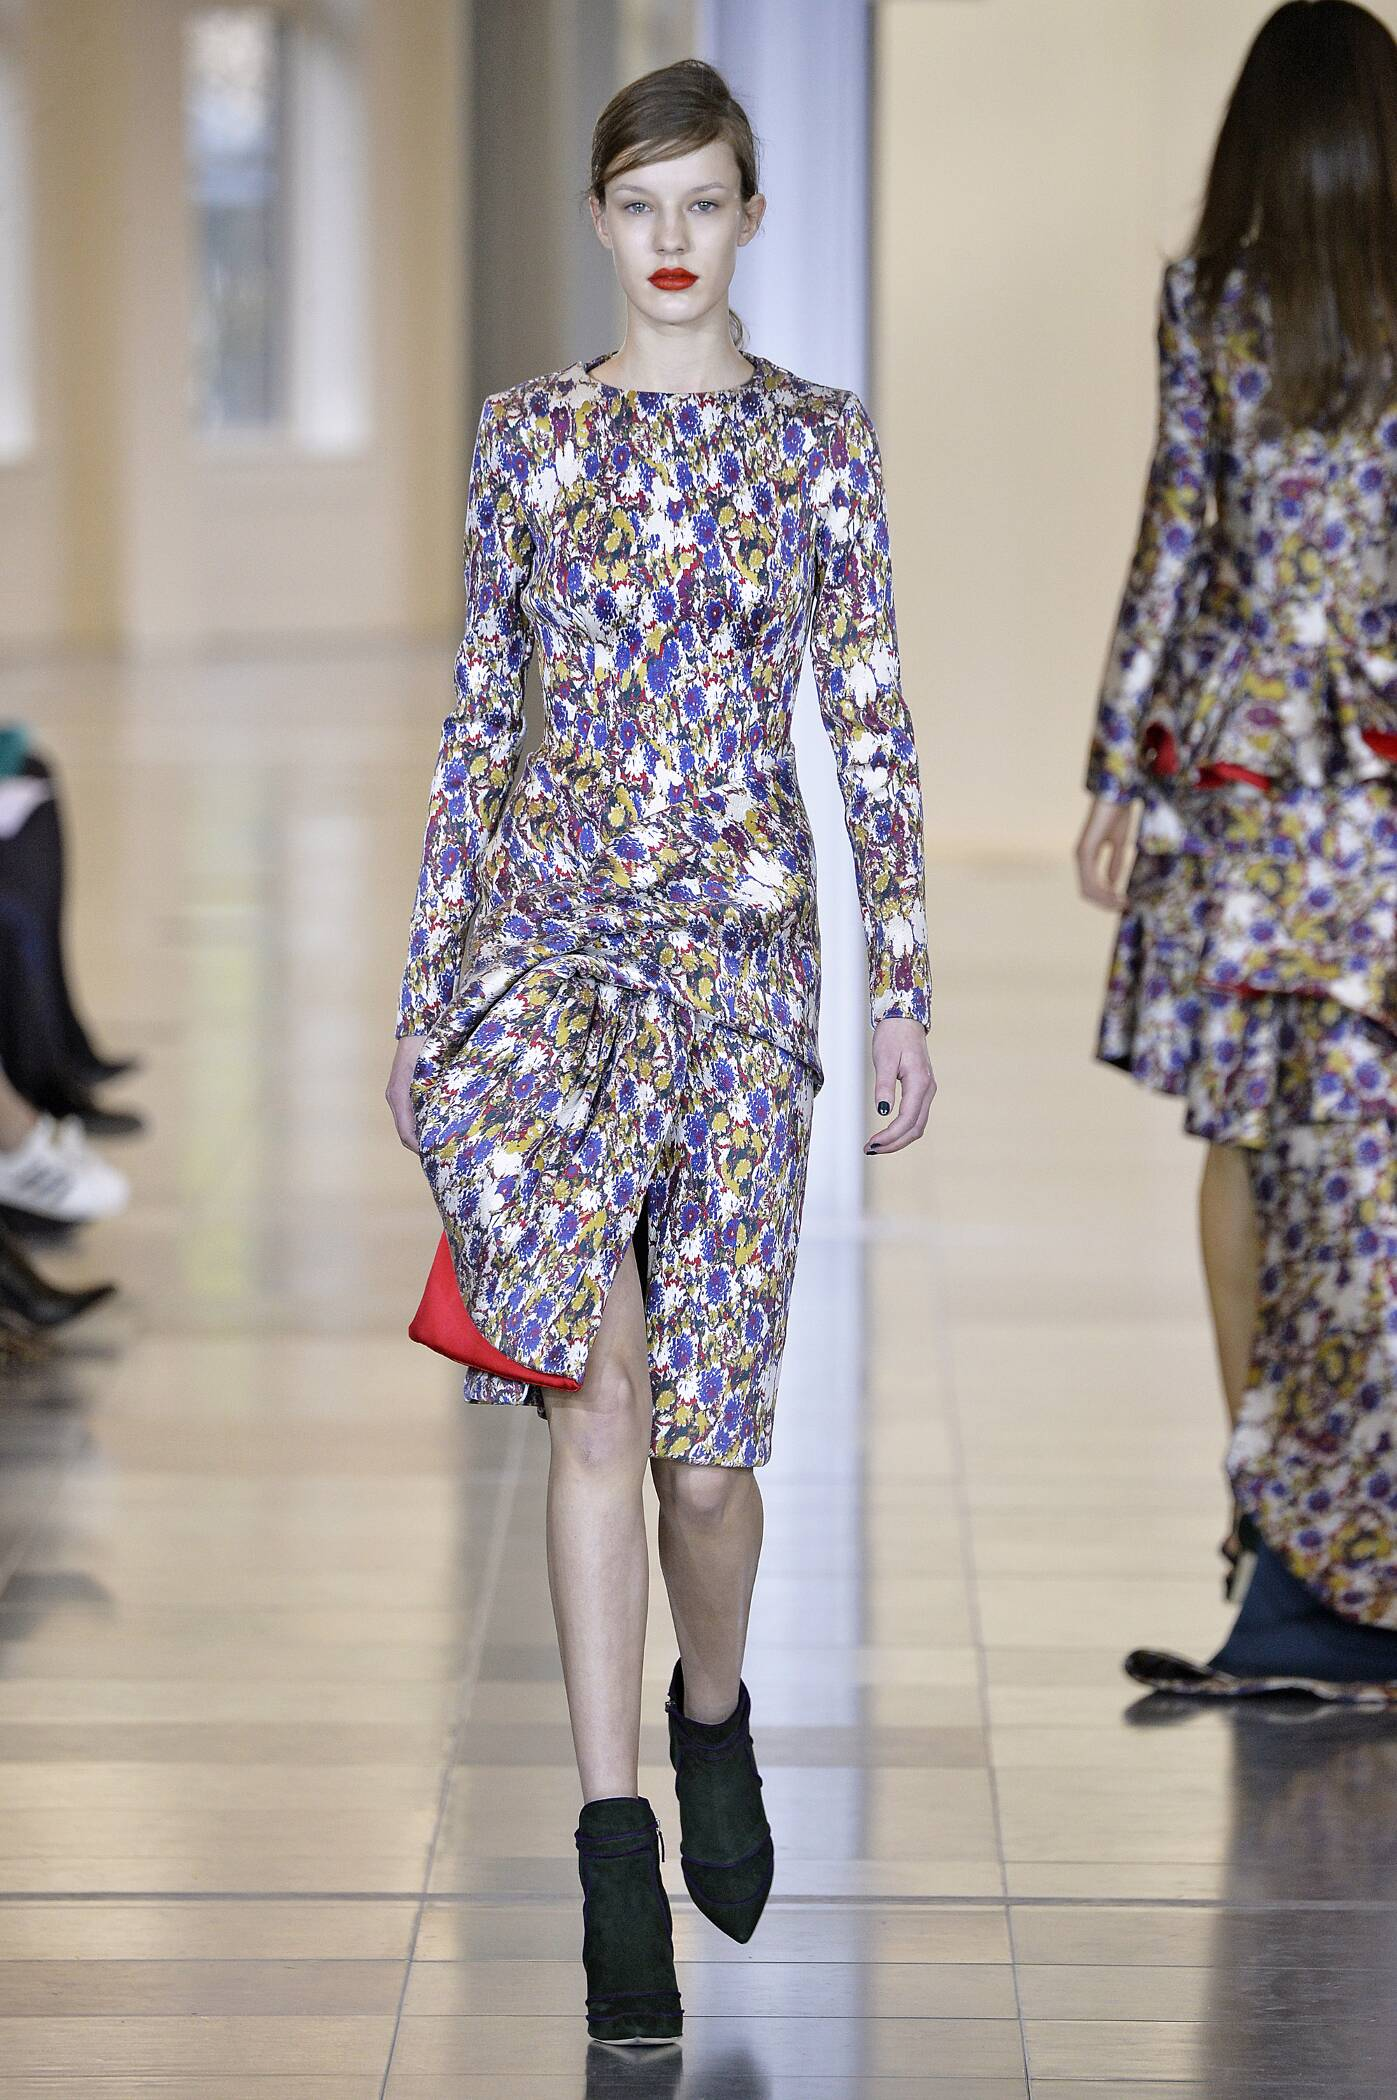 Winter Fashion Trends 2015 2016 Antonio Berardi Collection